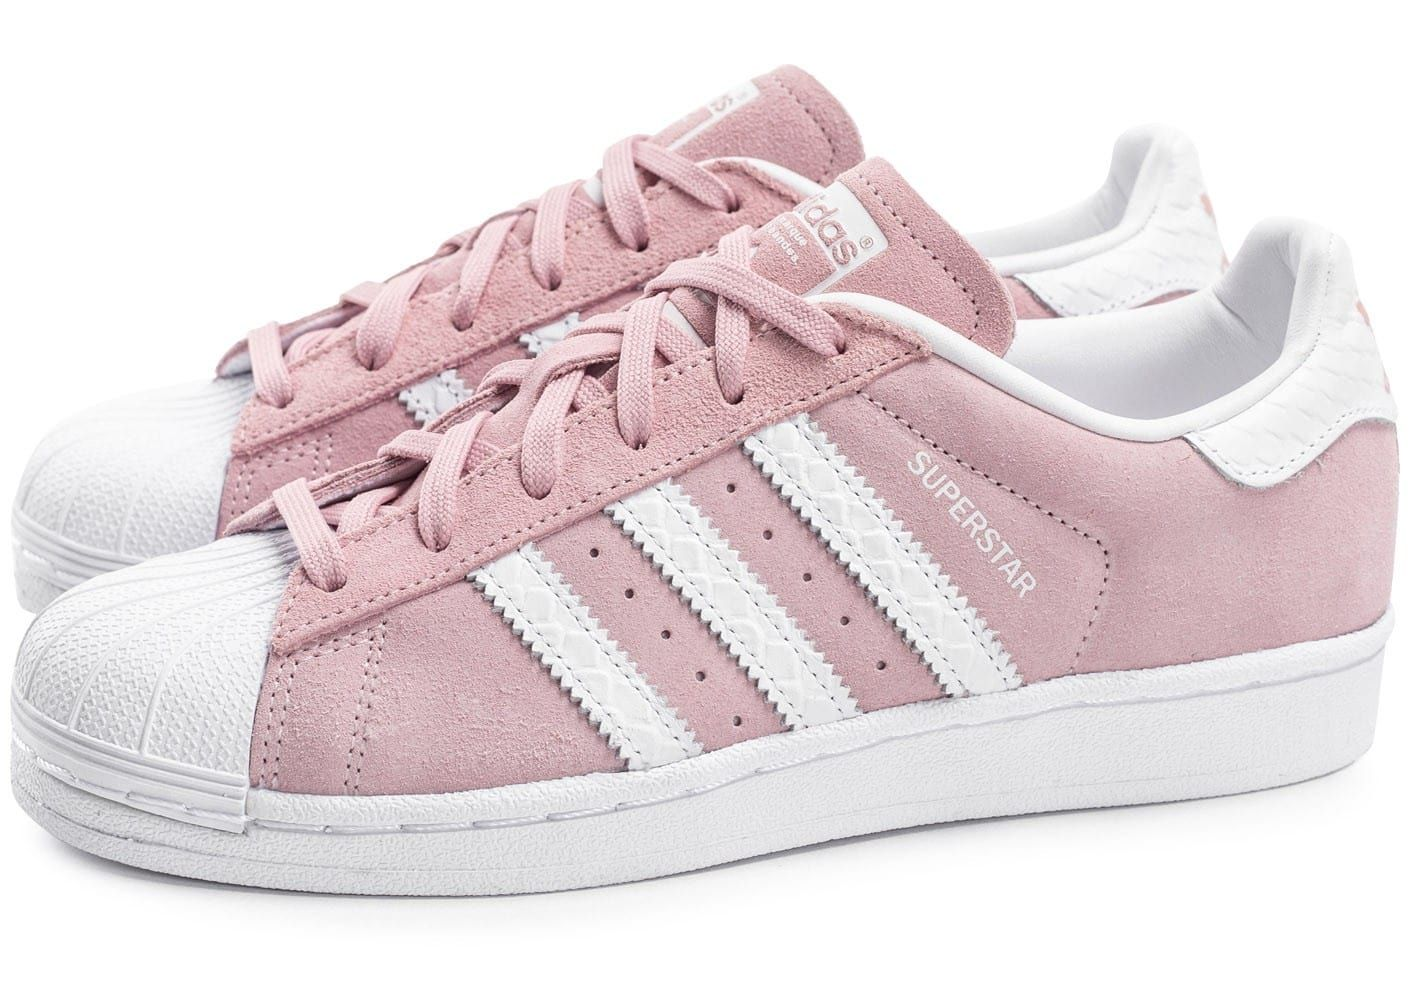 chaussures adidas superstar suede rose p le vue ext rieure idee mode pinterest adidas. Black Bedroom Furniture Sets. Home Design Ideas